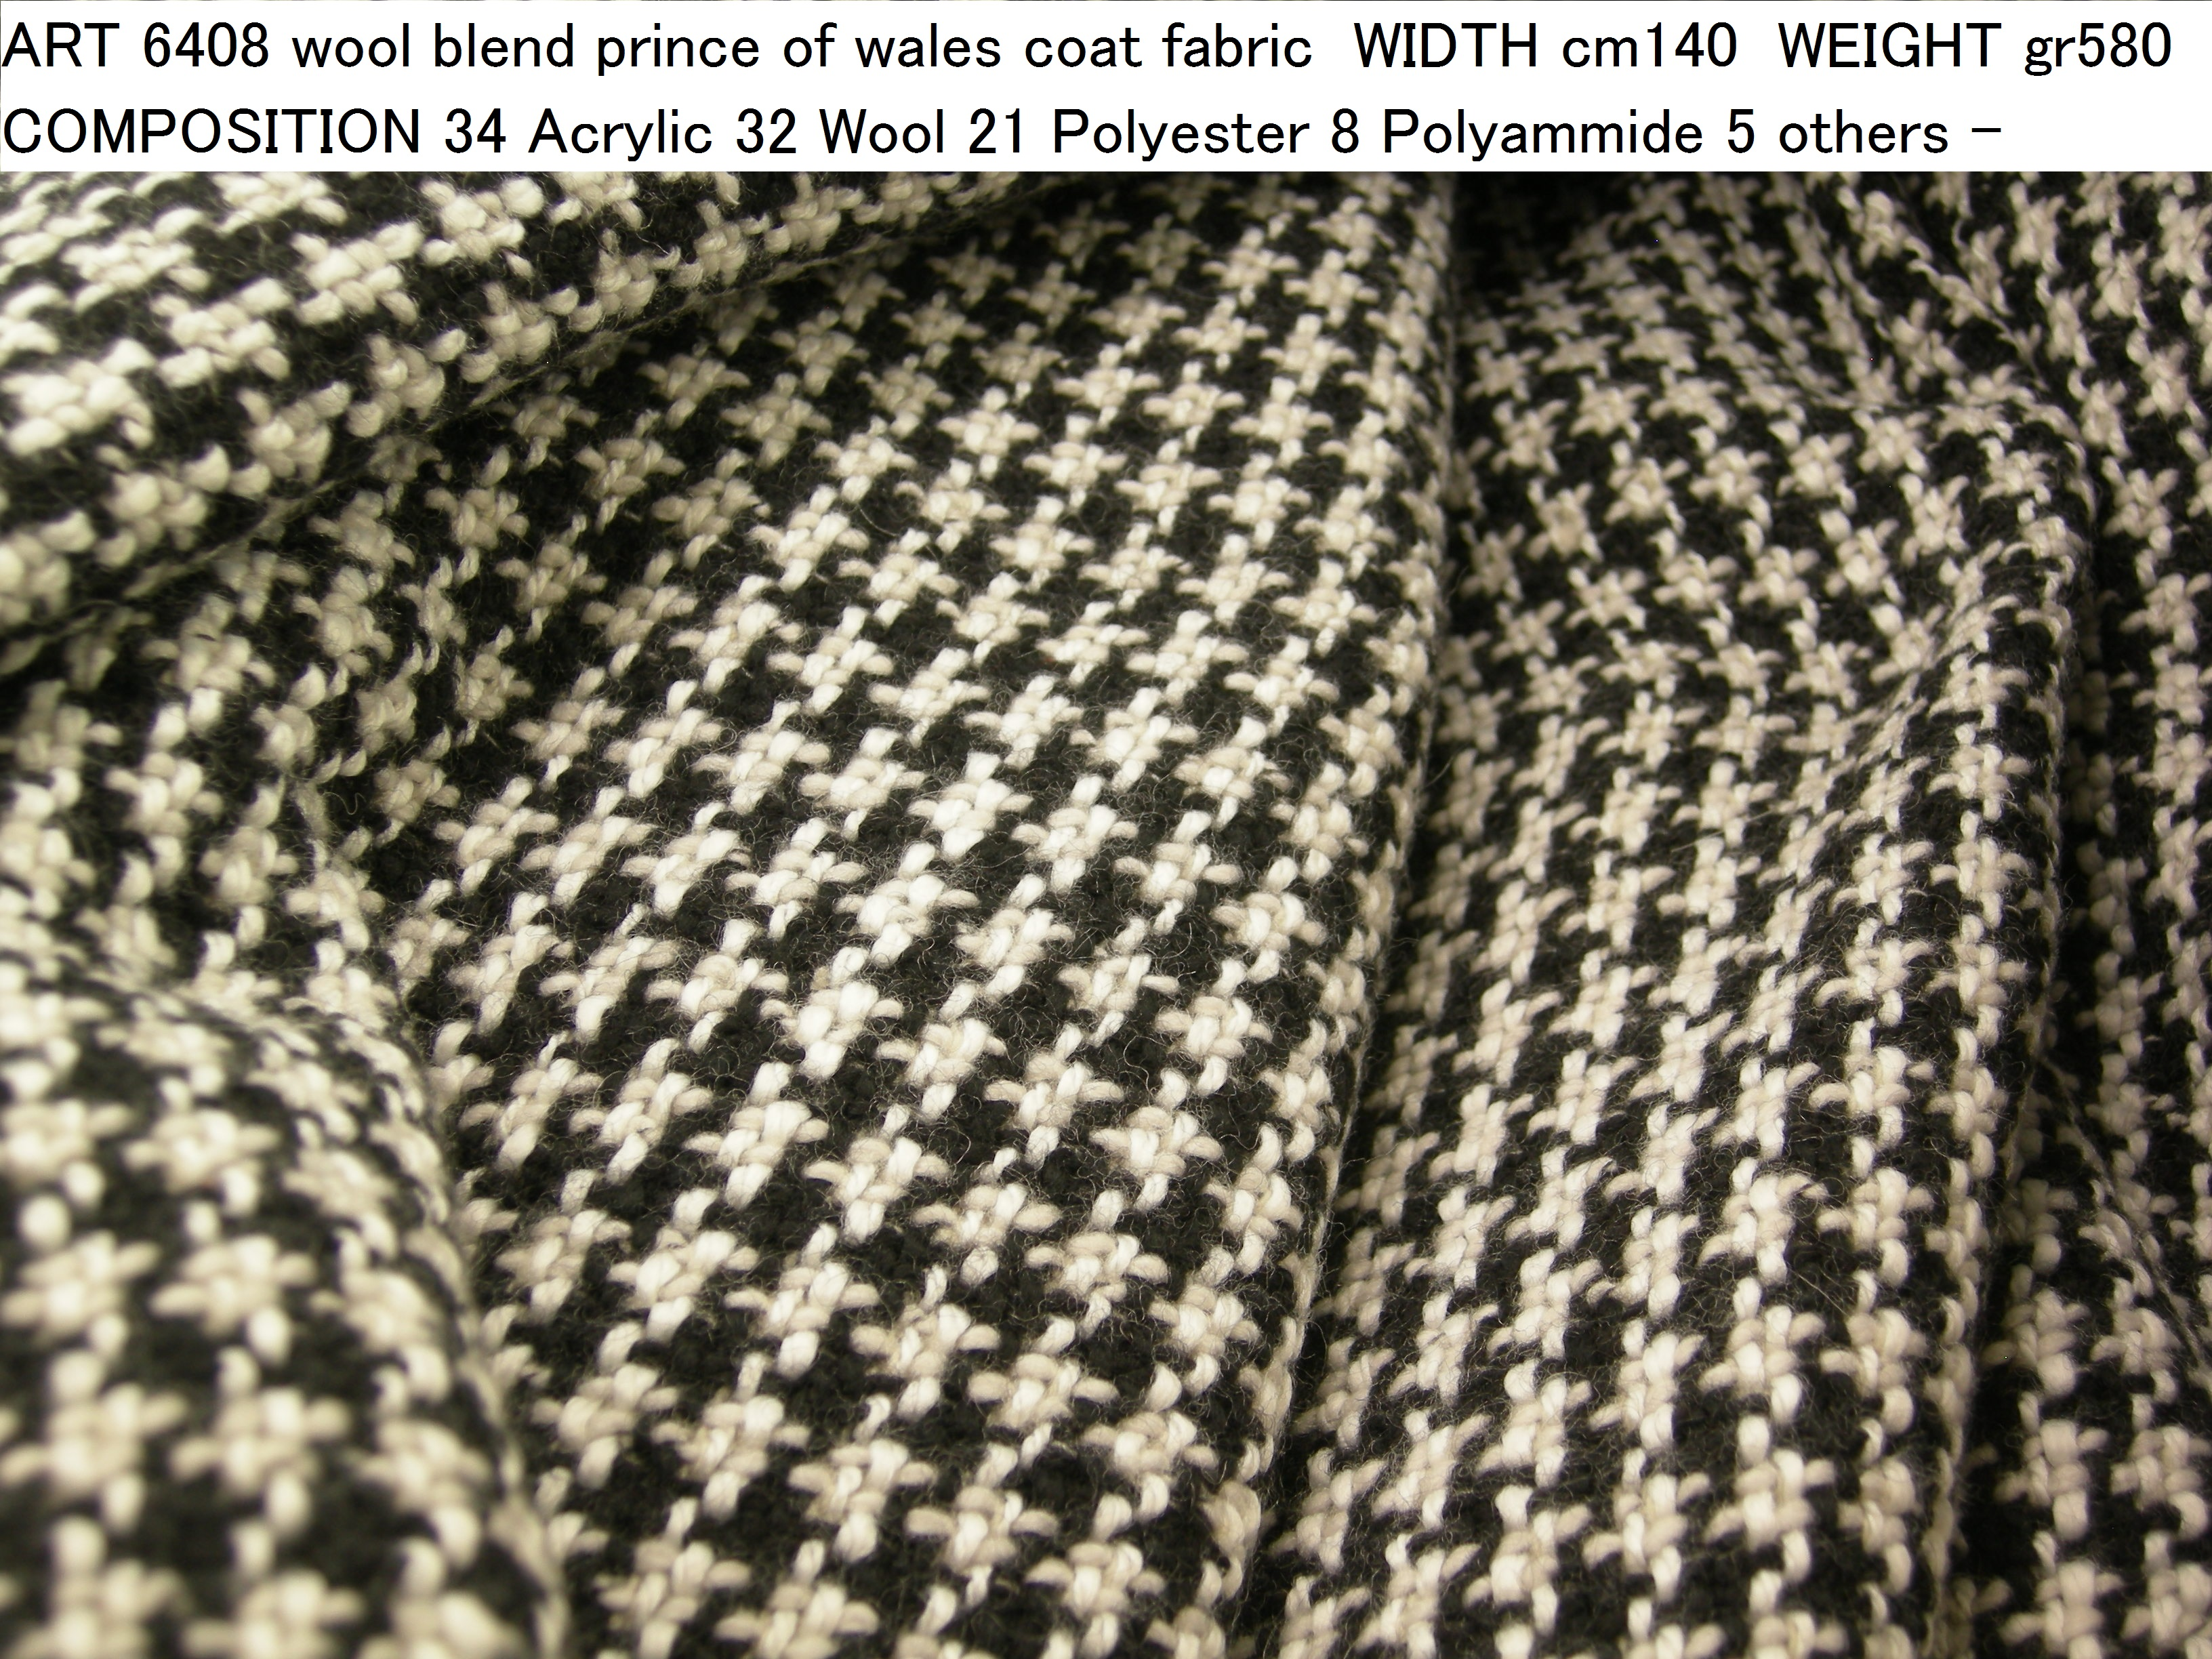 ART 6408 wool blend prince of wales coat fabric WIDTH cm140 WEIGHT gr580 COMPOSITION 34 Acrylic 32 Wool 21 Polyester 8 Polyammide 5 others - 450mts